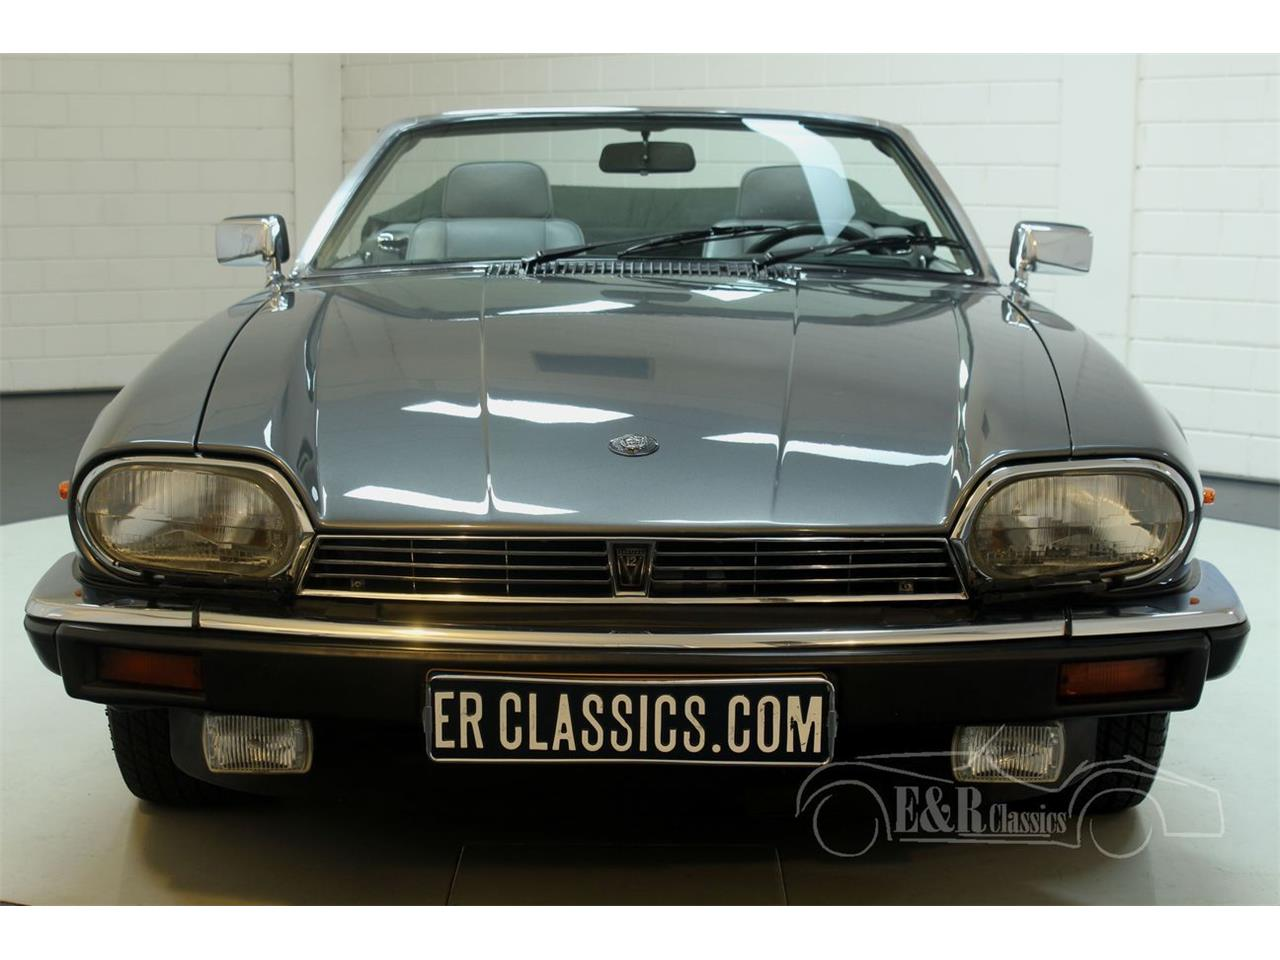 Large Picture of '88 Jaguar XJS located in - Keine Angabe - Offered by E & R Classics - PGSZ